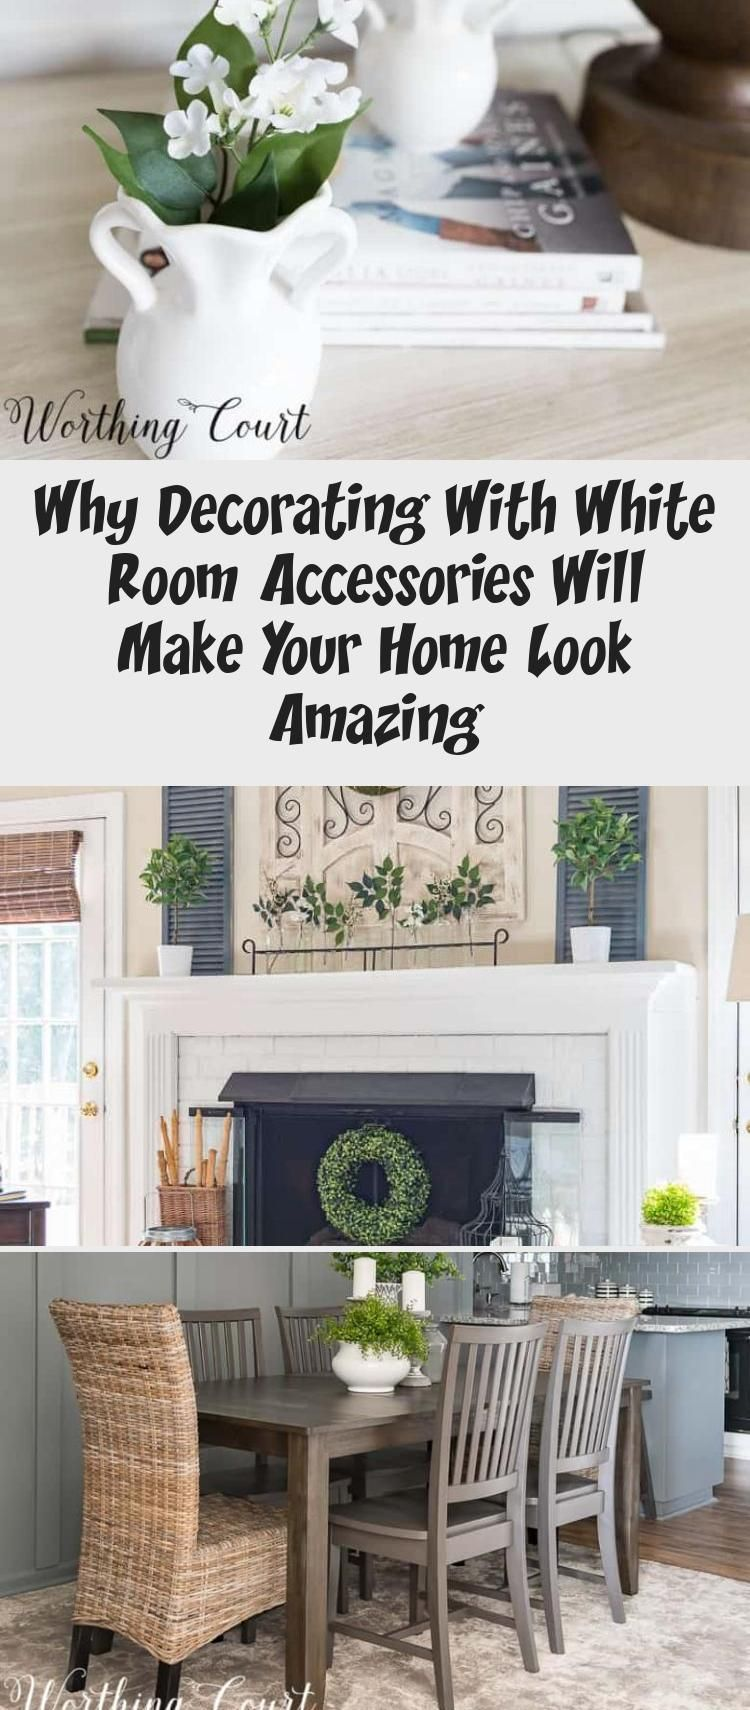 Why Decorating With White Room Accessories Will Make Your Home Look Amazing – KTCHN Kitchen